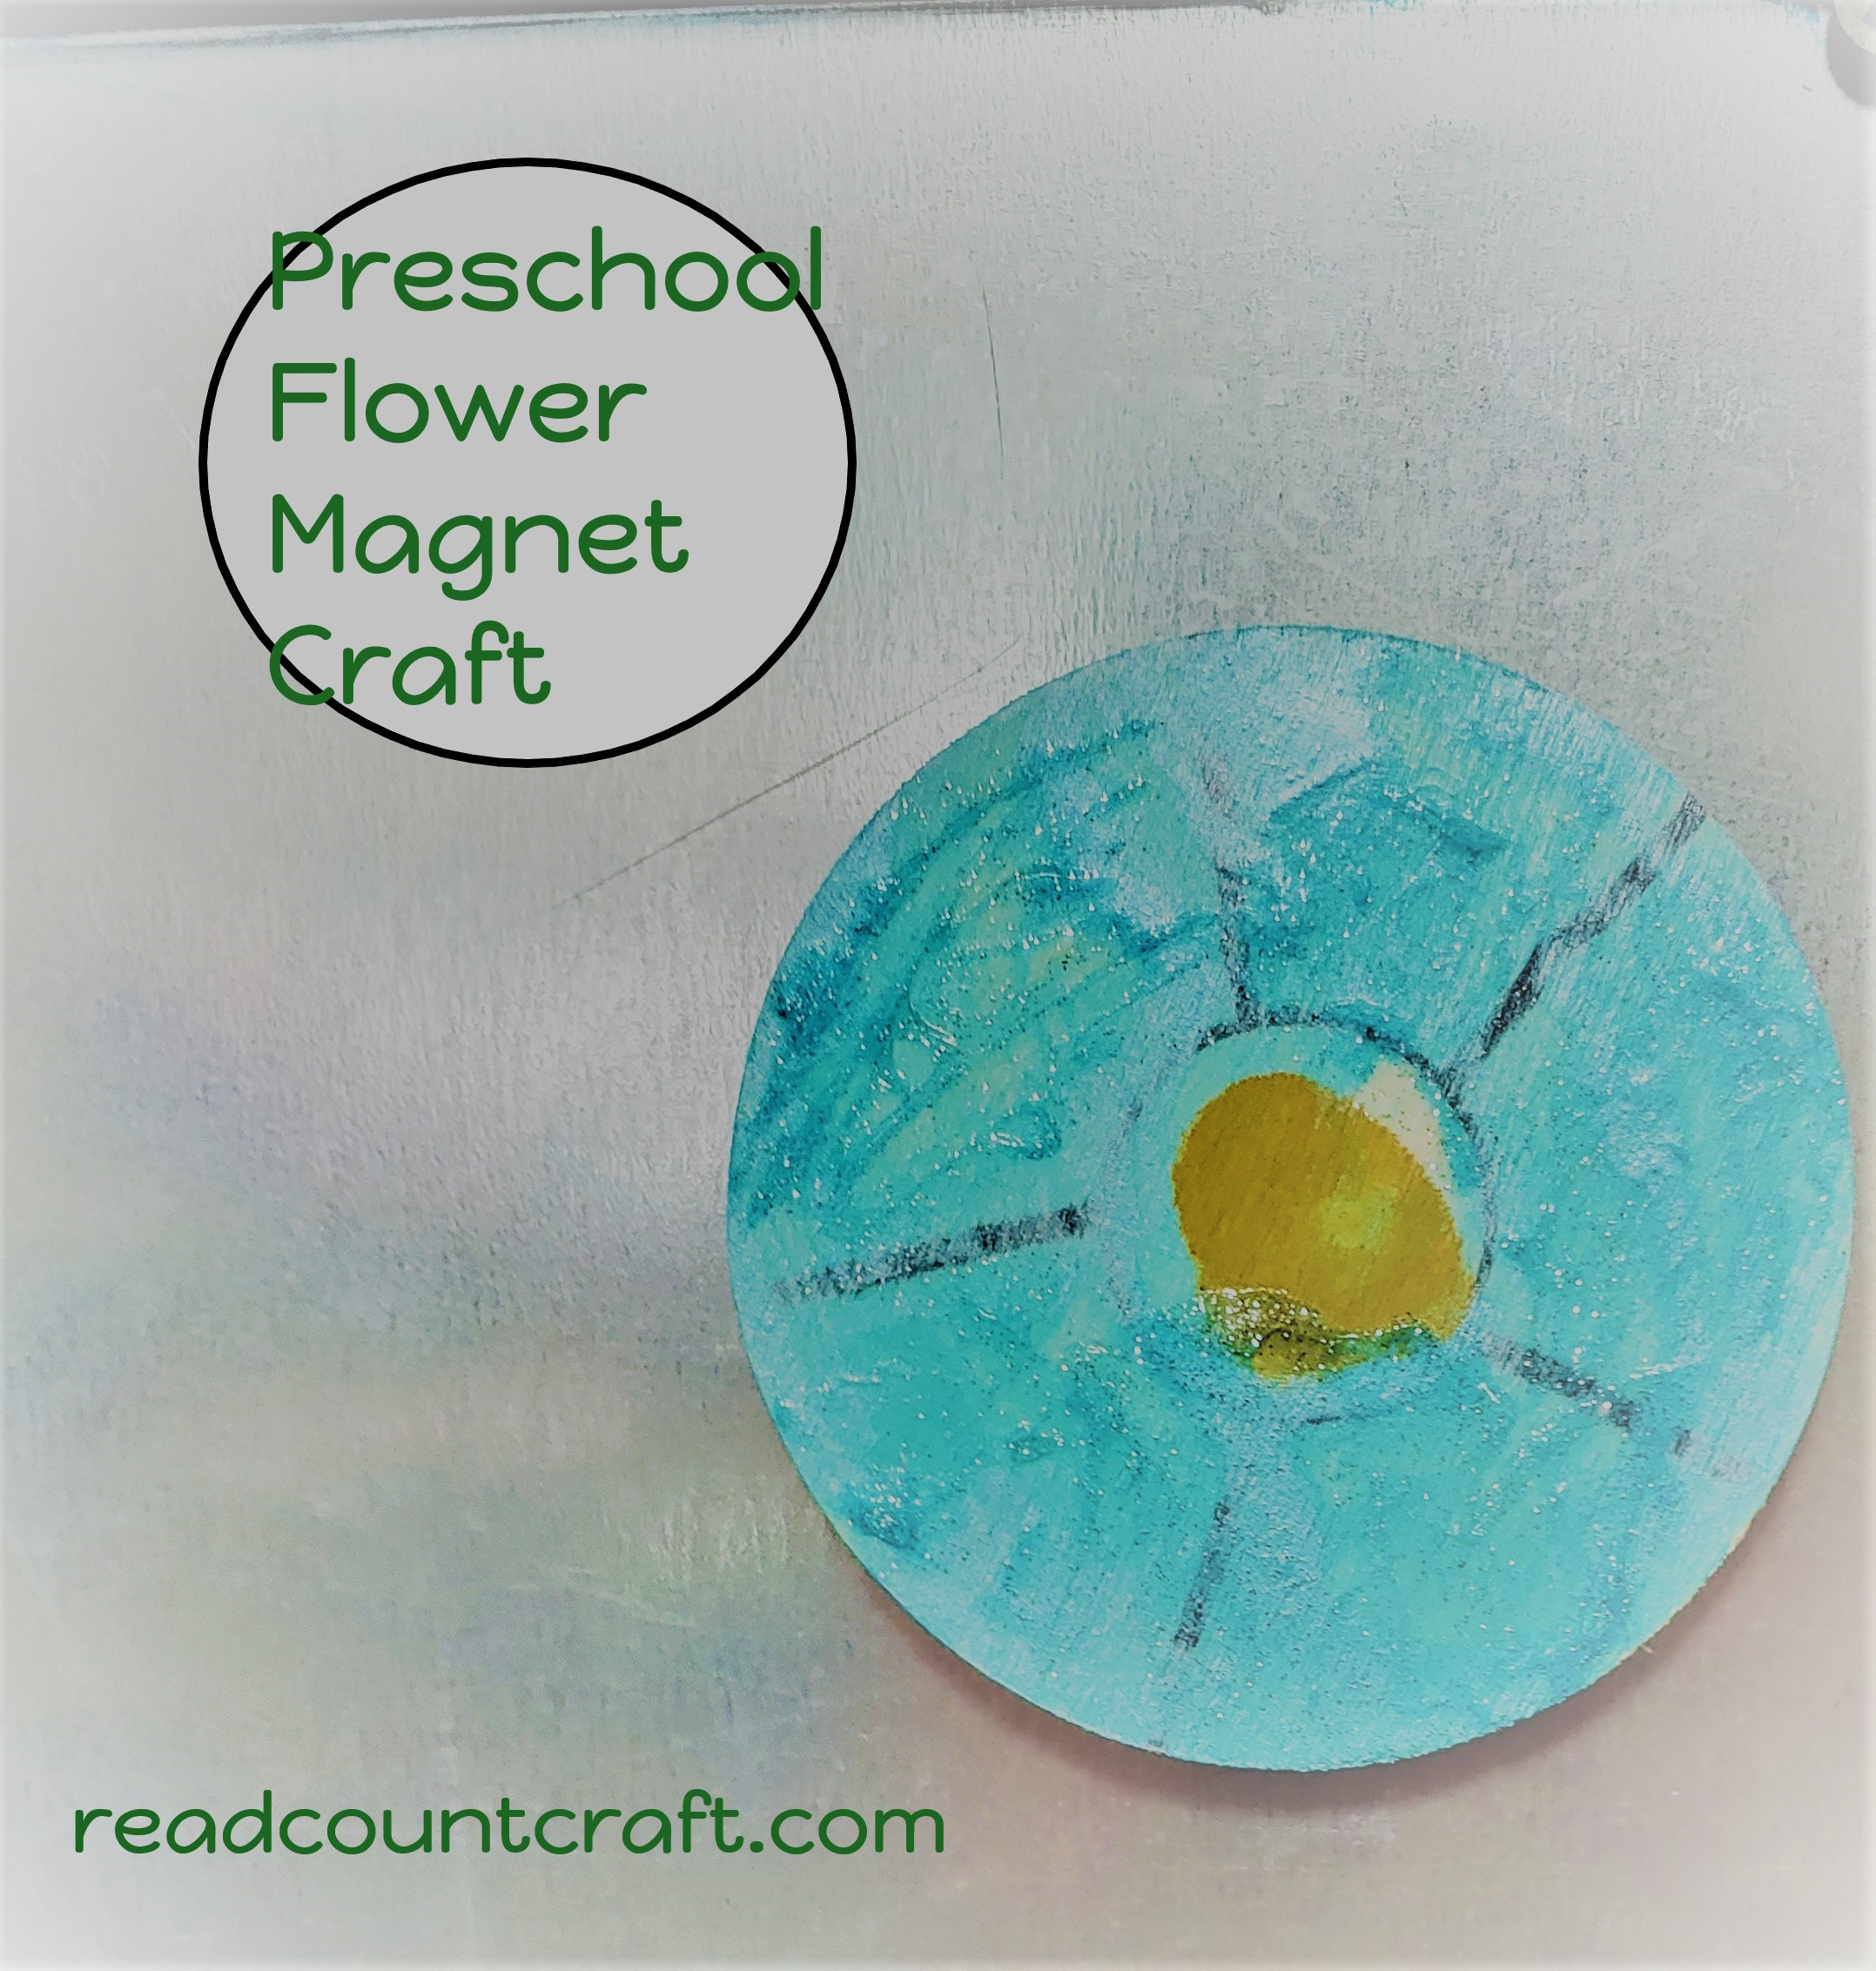 Readcountcraft Tested Resources Preschoolers Building